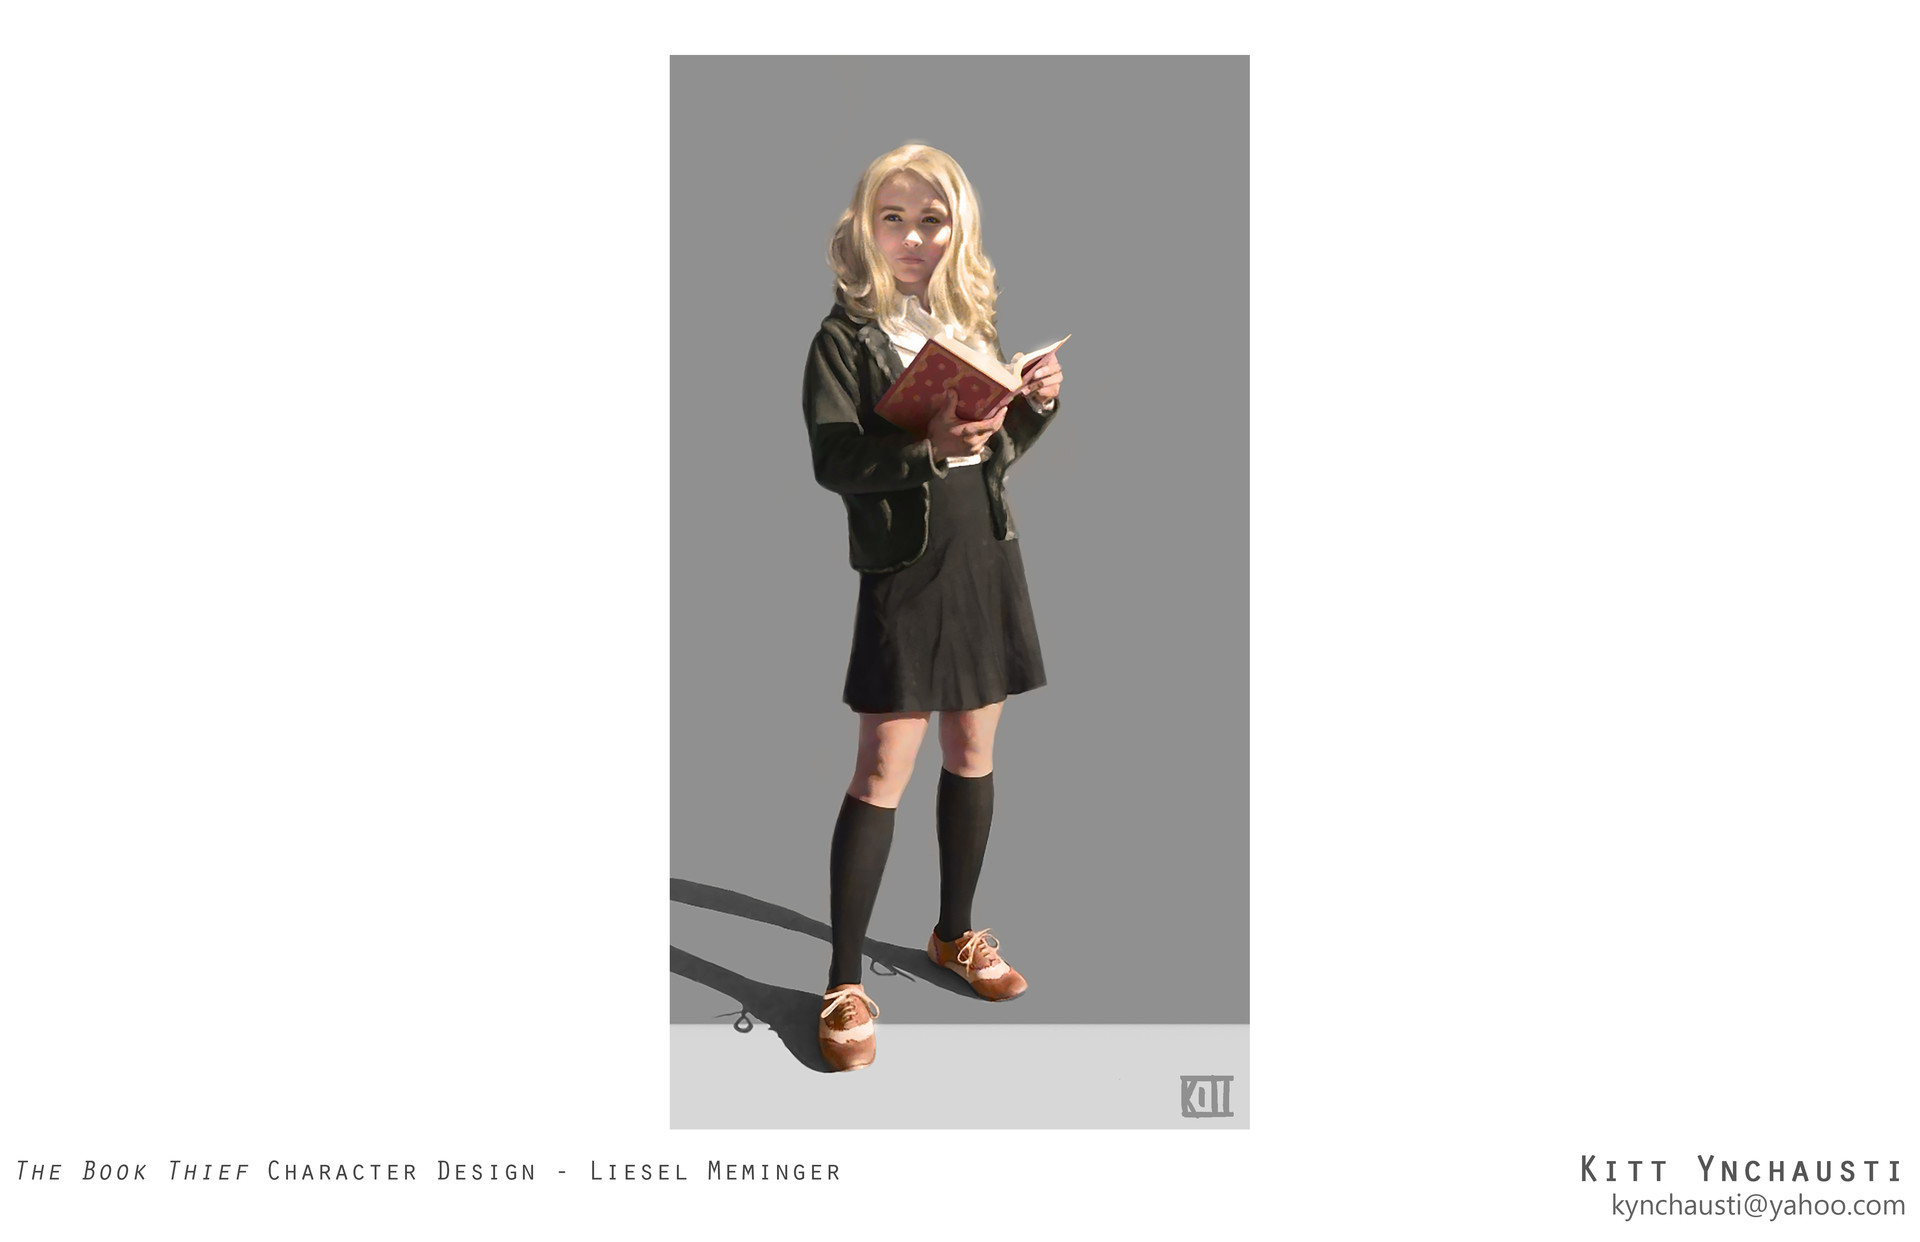 the book thief liesel meminger character design kitt scroll to see more